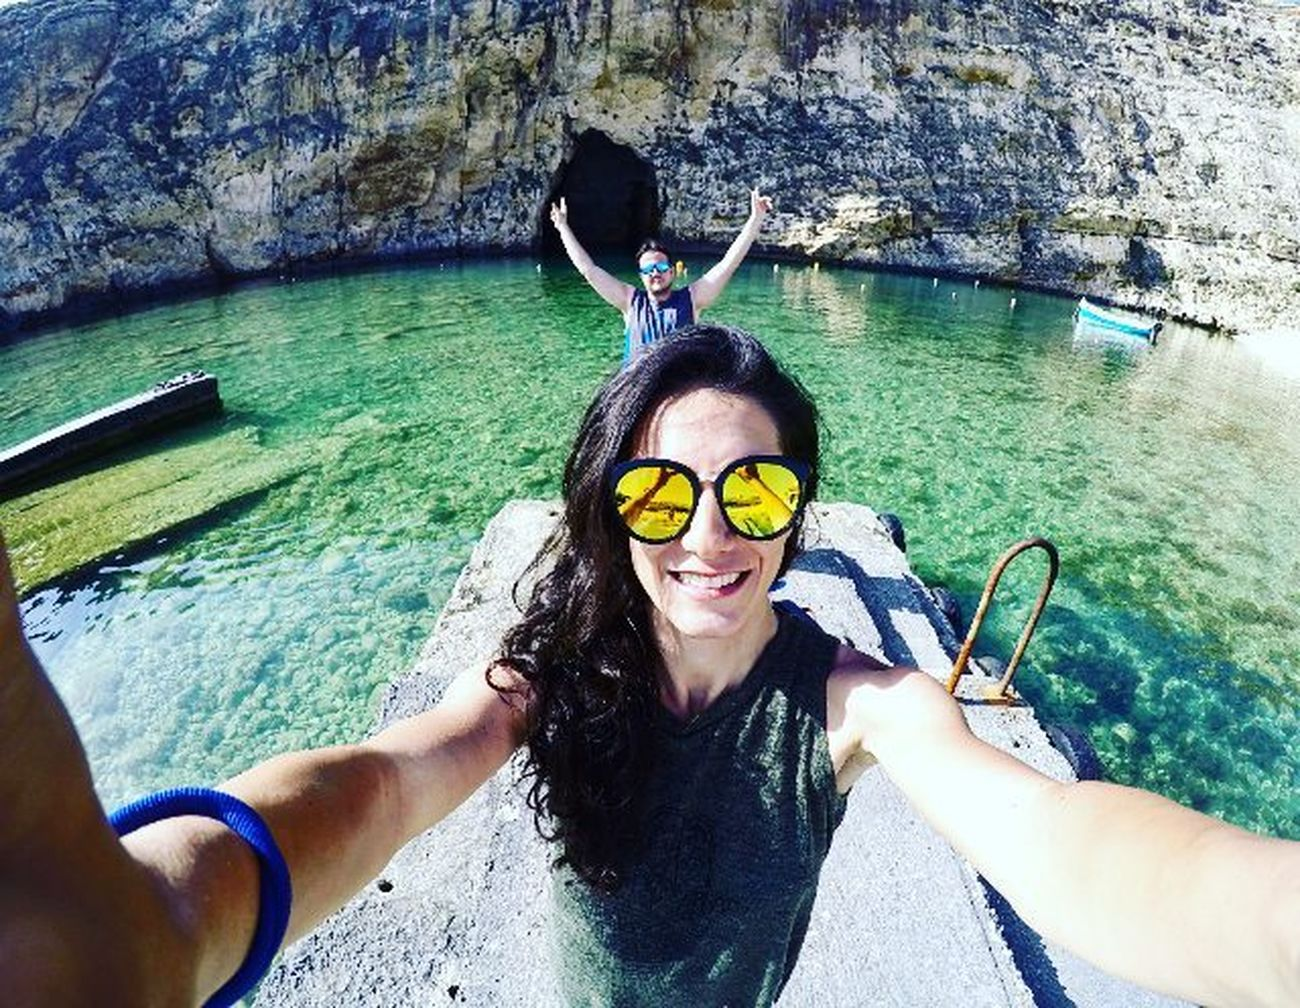 Take a trip to behind the window ⛵ Diclemre Diclemreontheway Malta Dicle30oldu Azurewindow Gameofthrones Smile Happiness Holiday Best  Askileyap Travel Vscocam Vscotravel Goprooftheday Bestoftheday Adventures Travelphotography